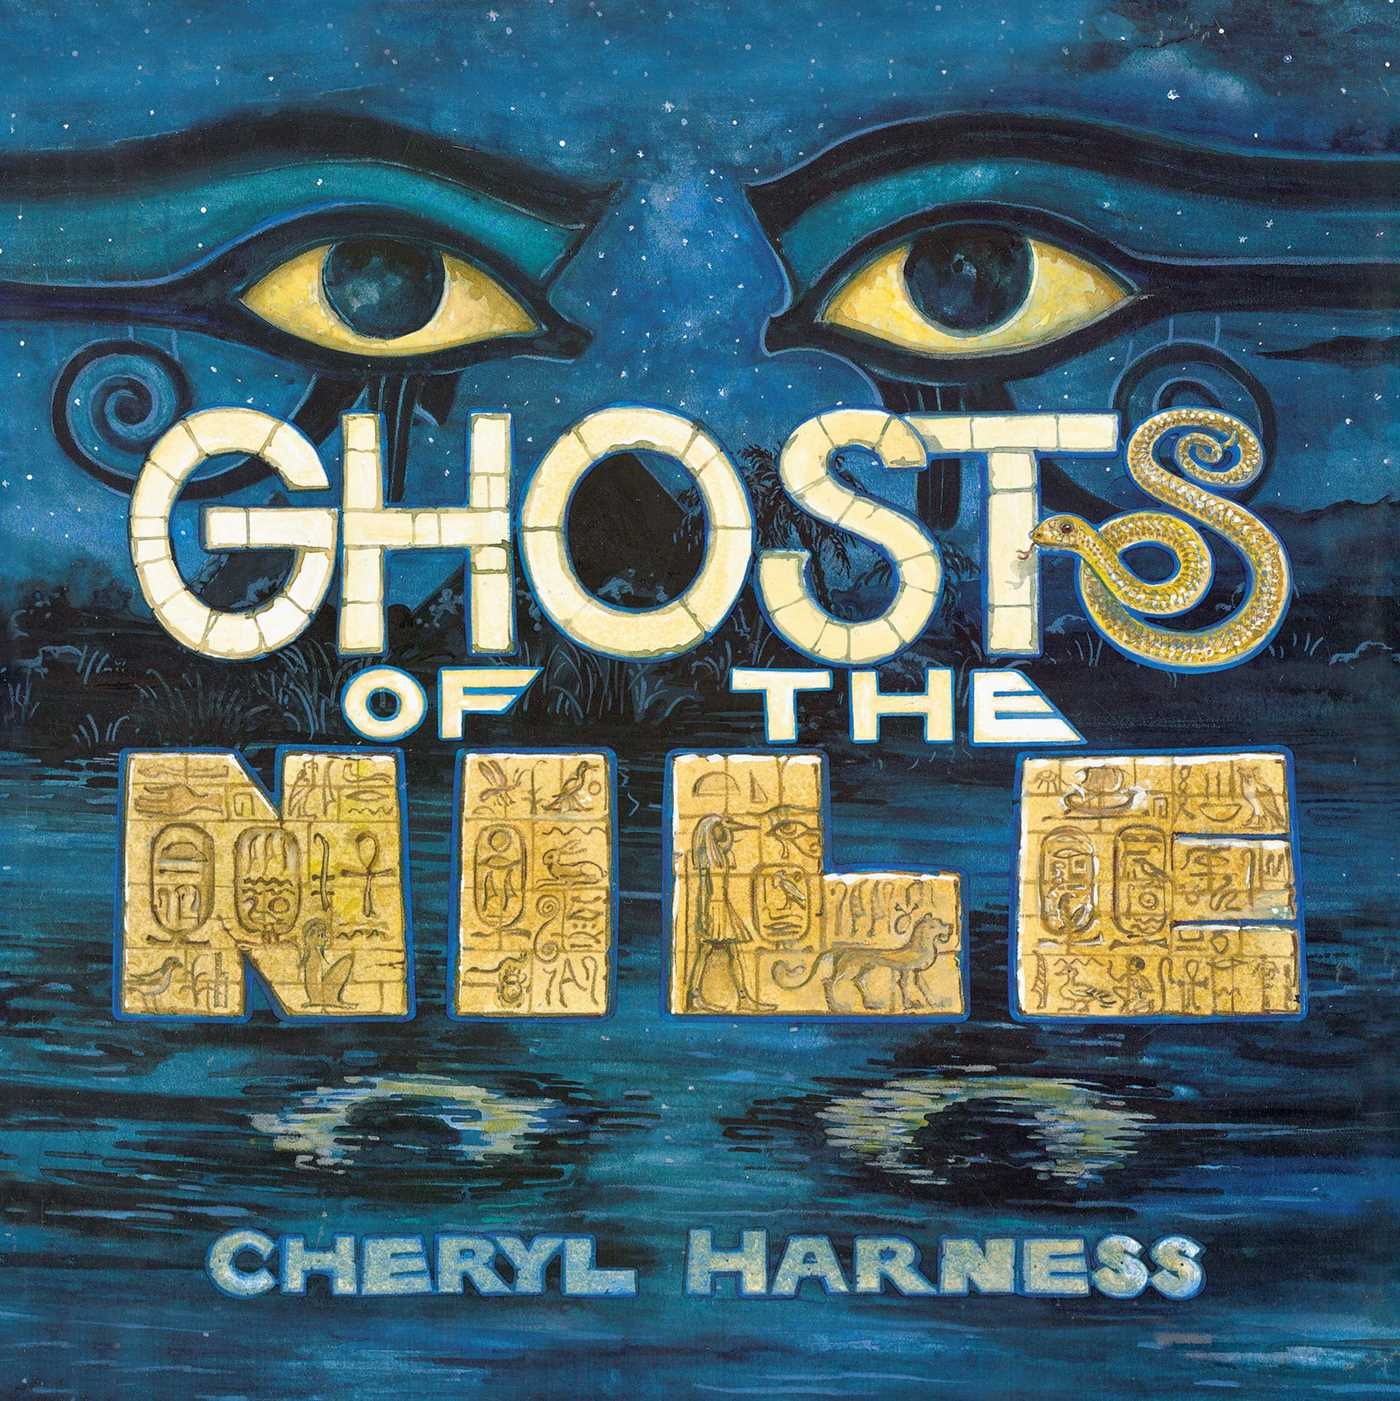 Ghosts-of-the-nile-9781442422001_hr